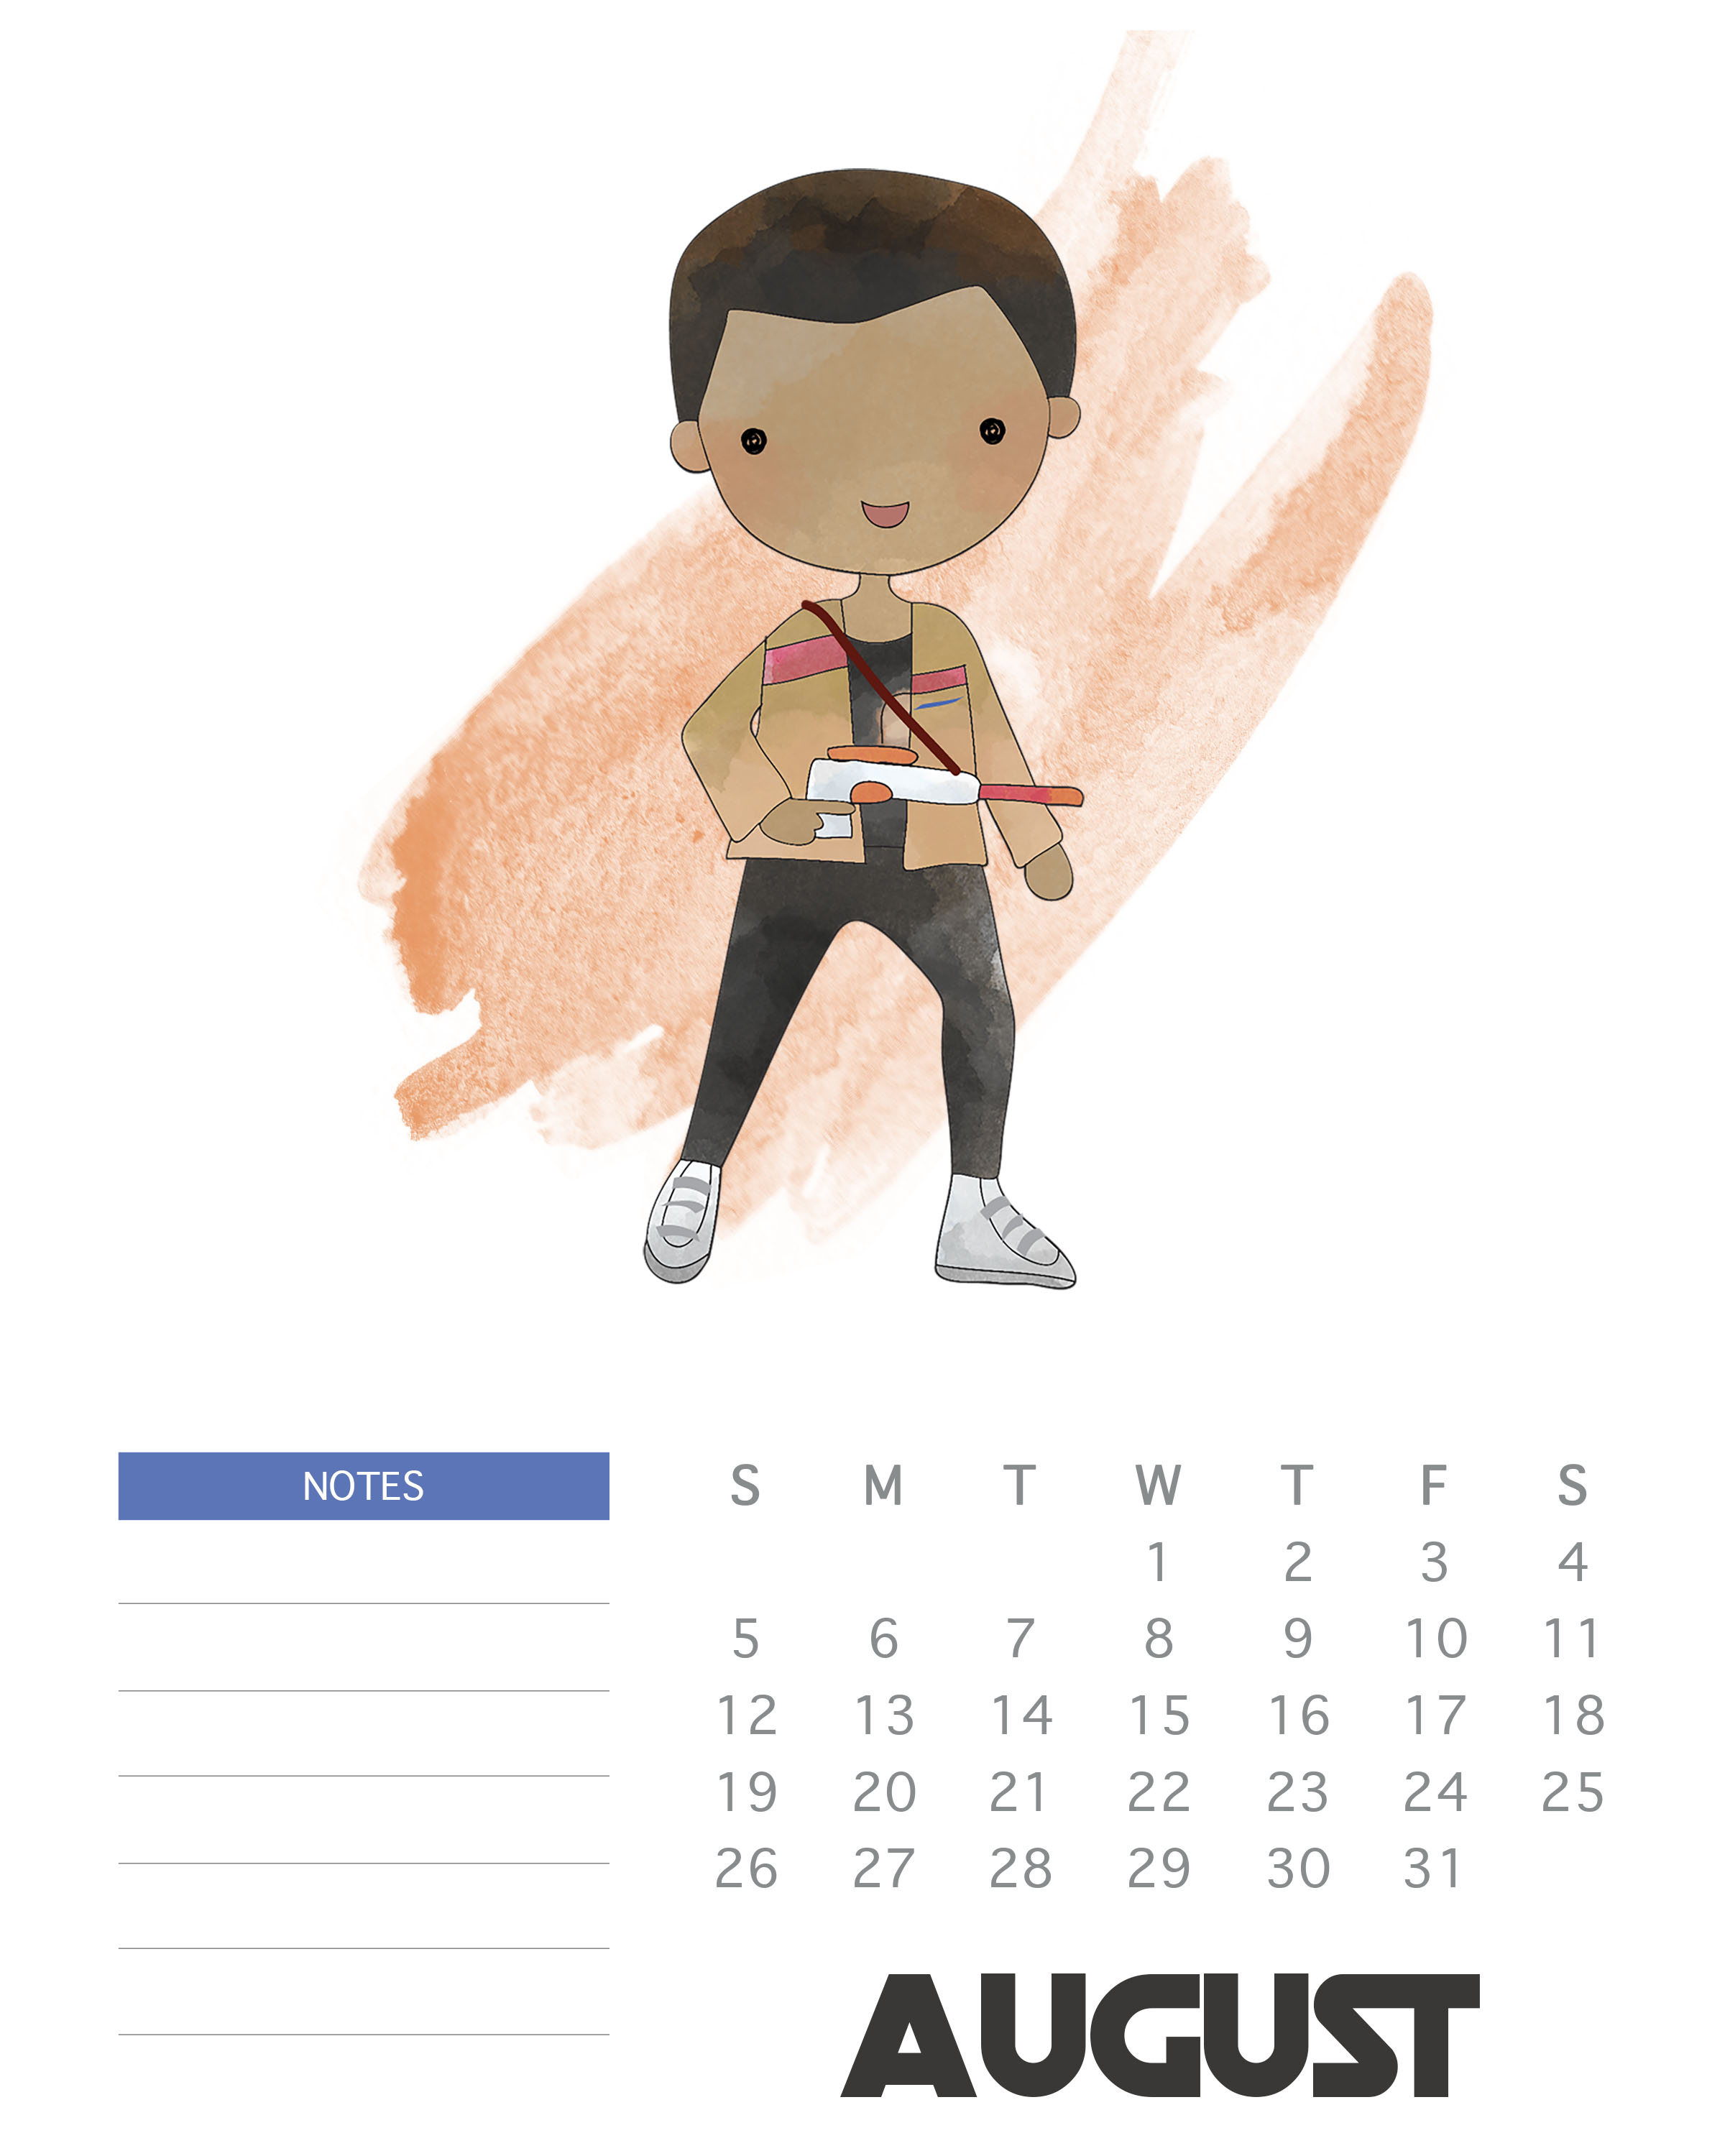 princess leia printable star wars calendar september 2018